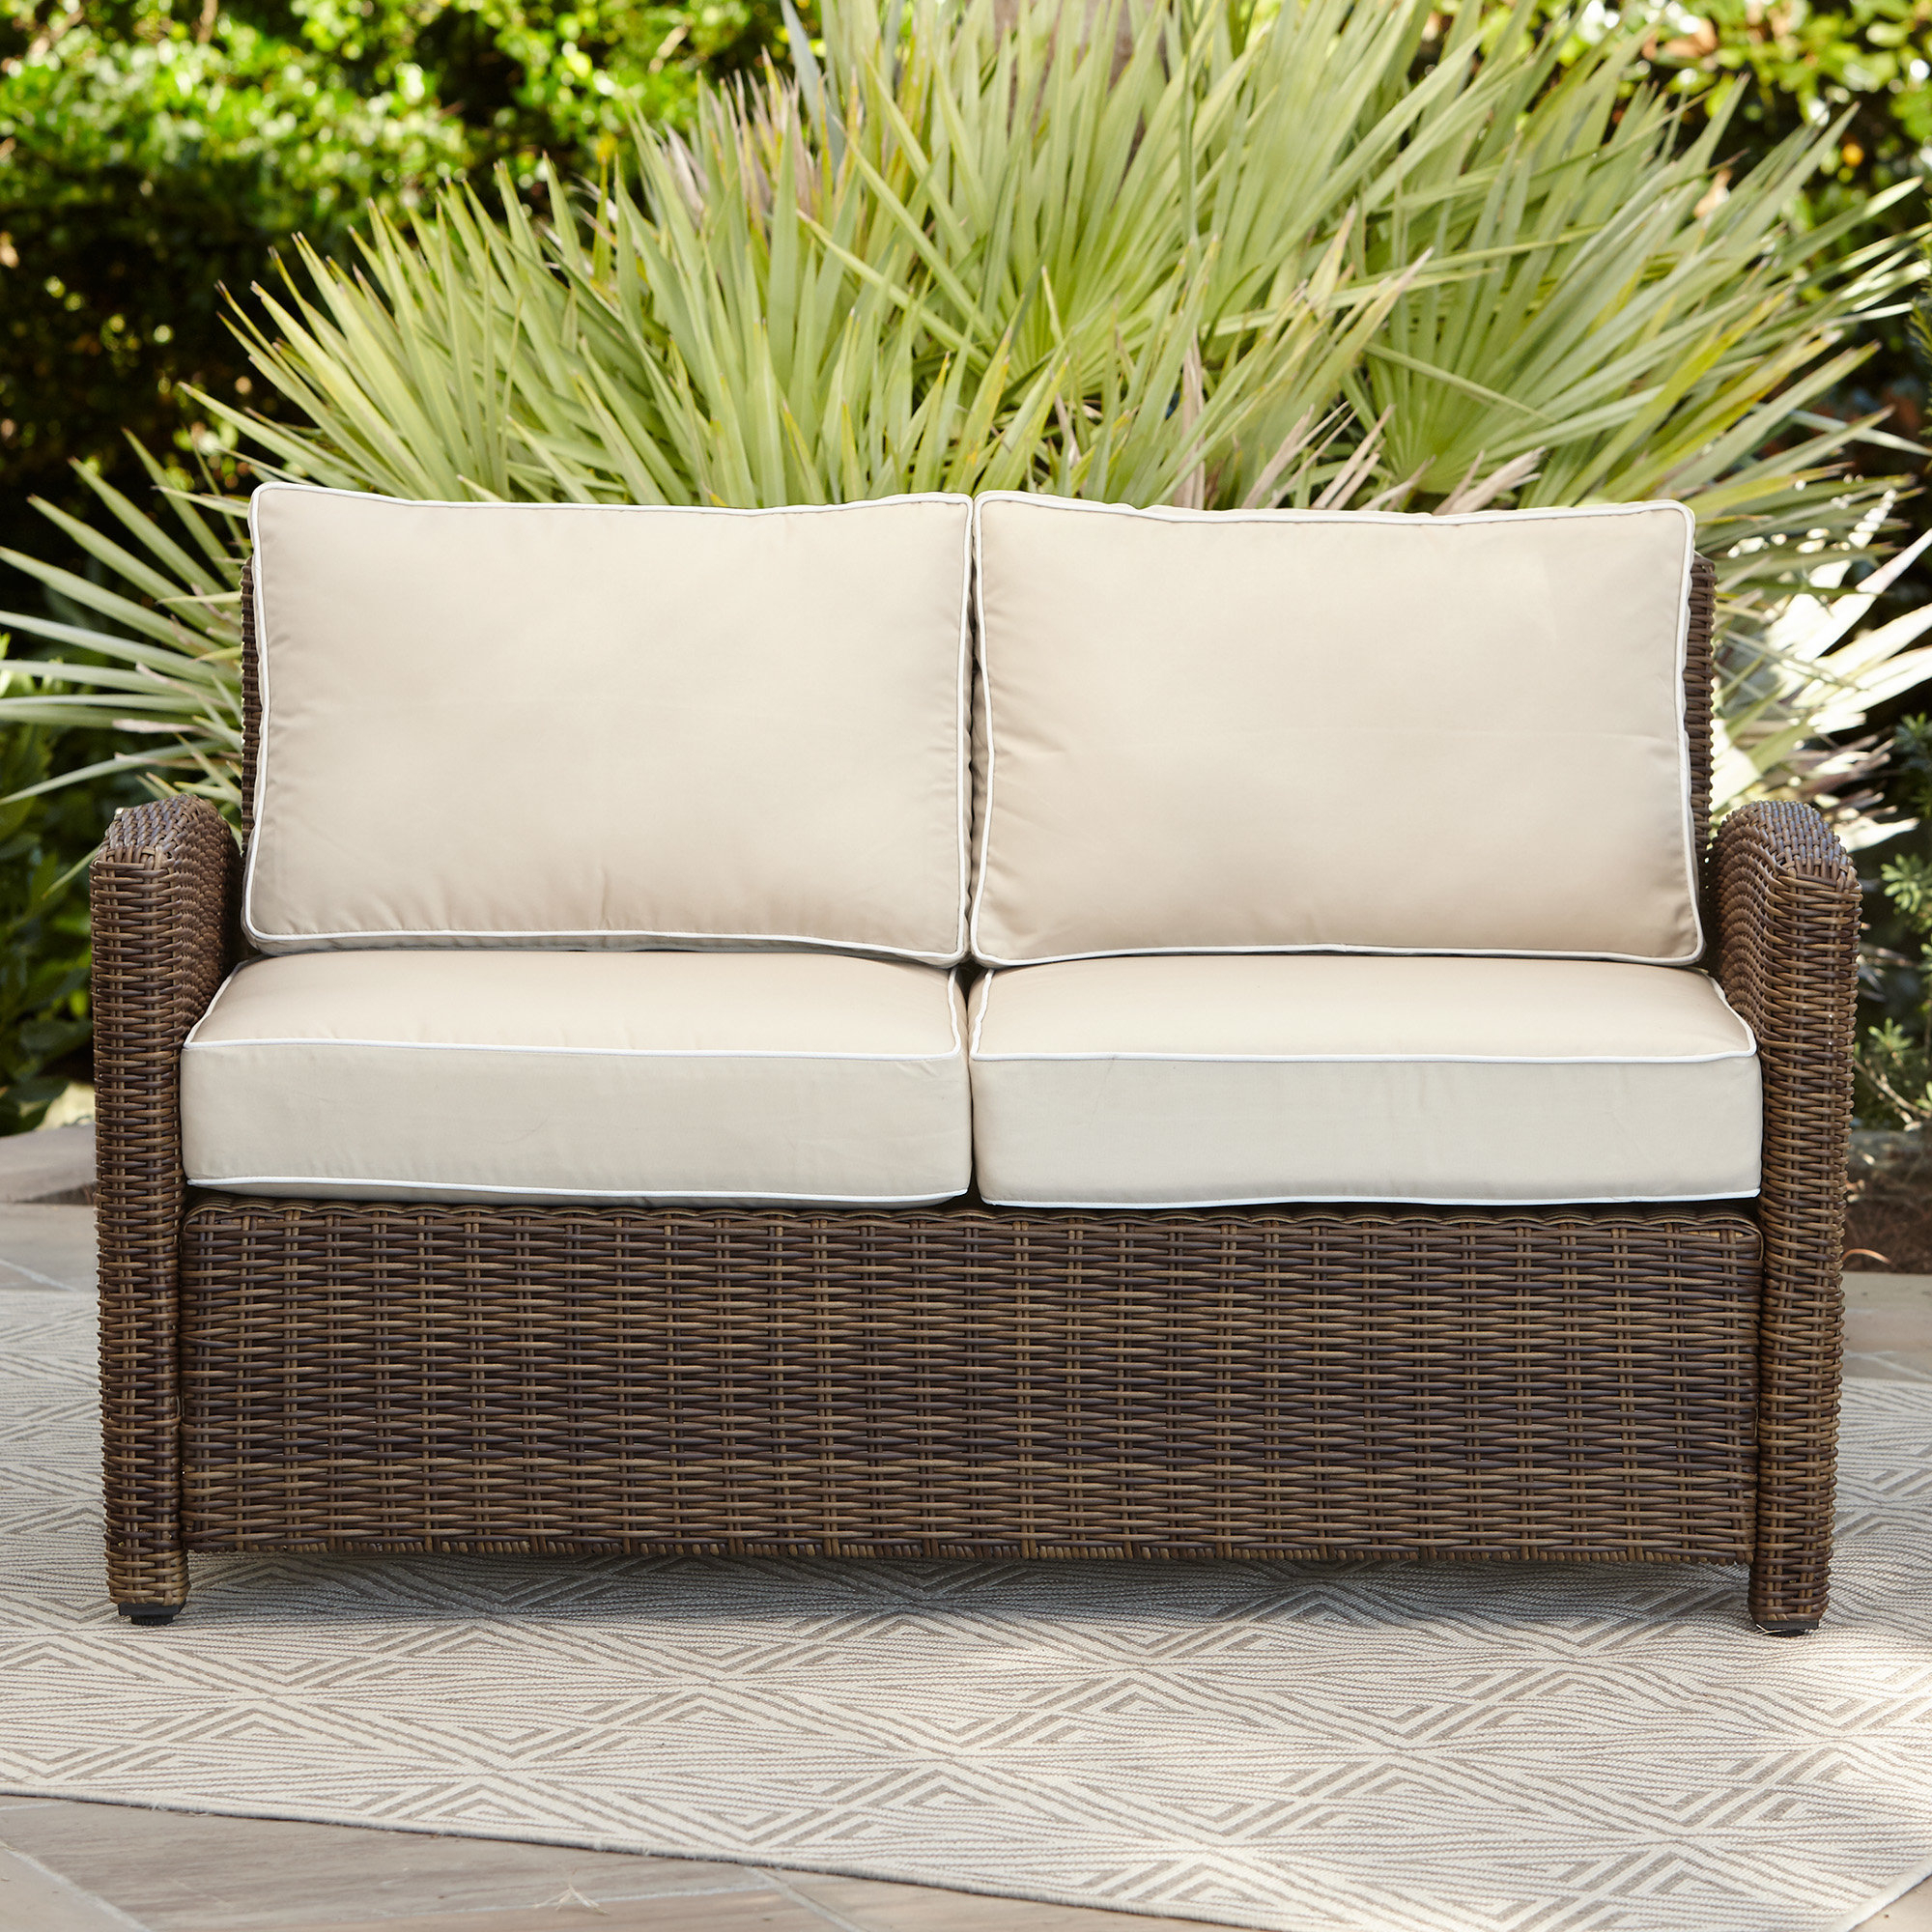 Wayfair In Kunz Loveseats With Cushions (View 2 of 20)